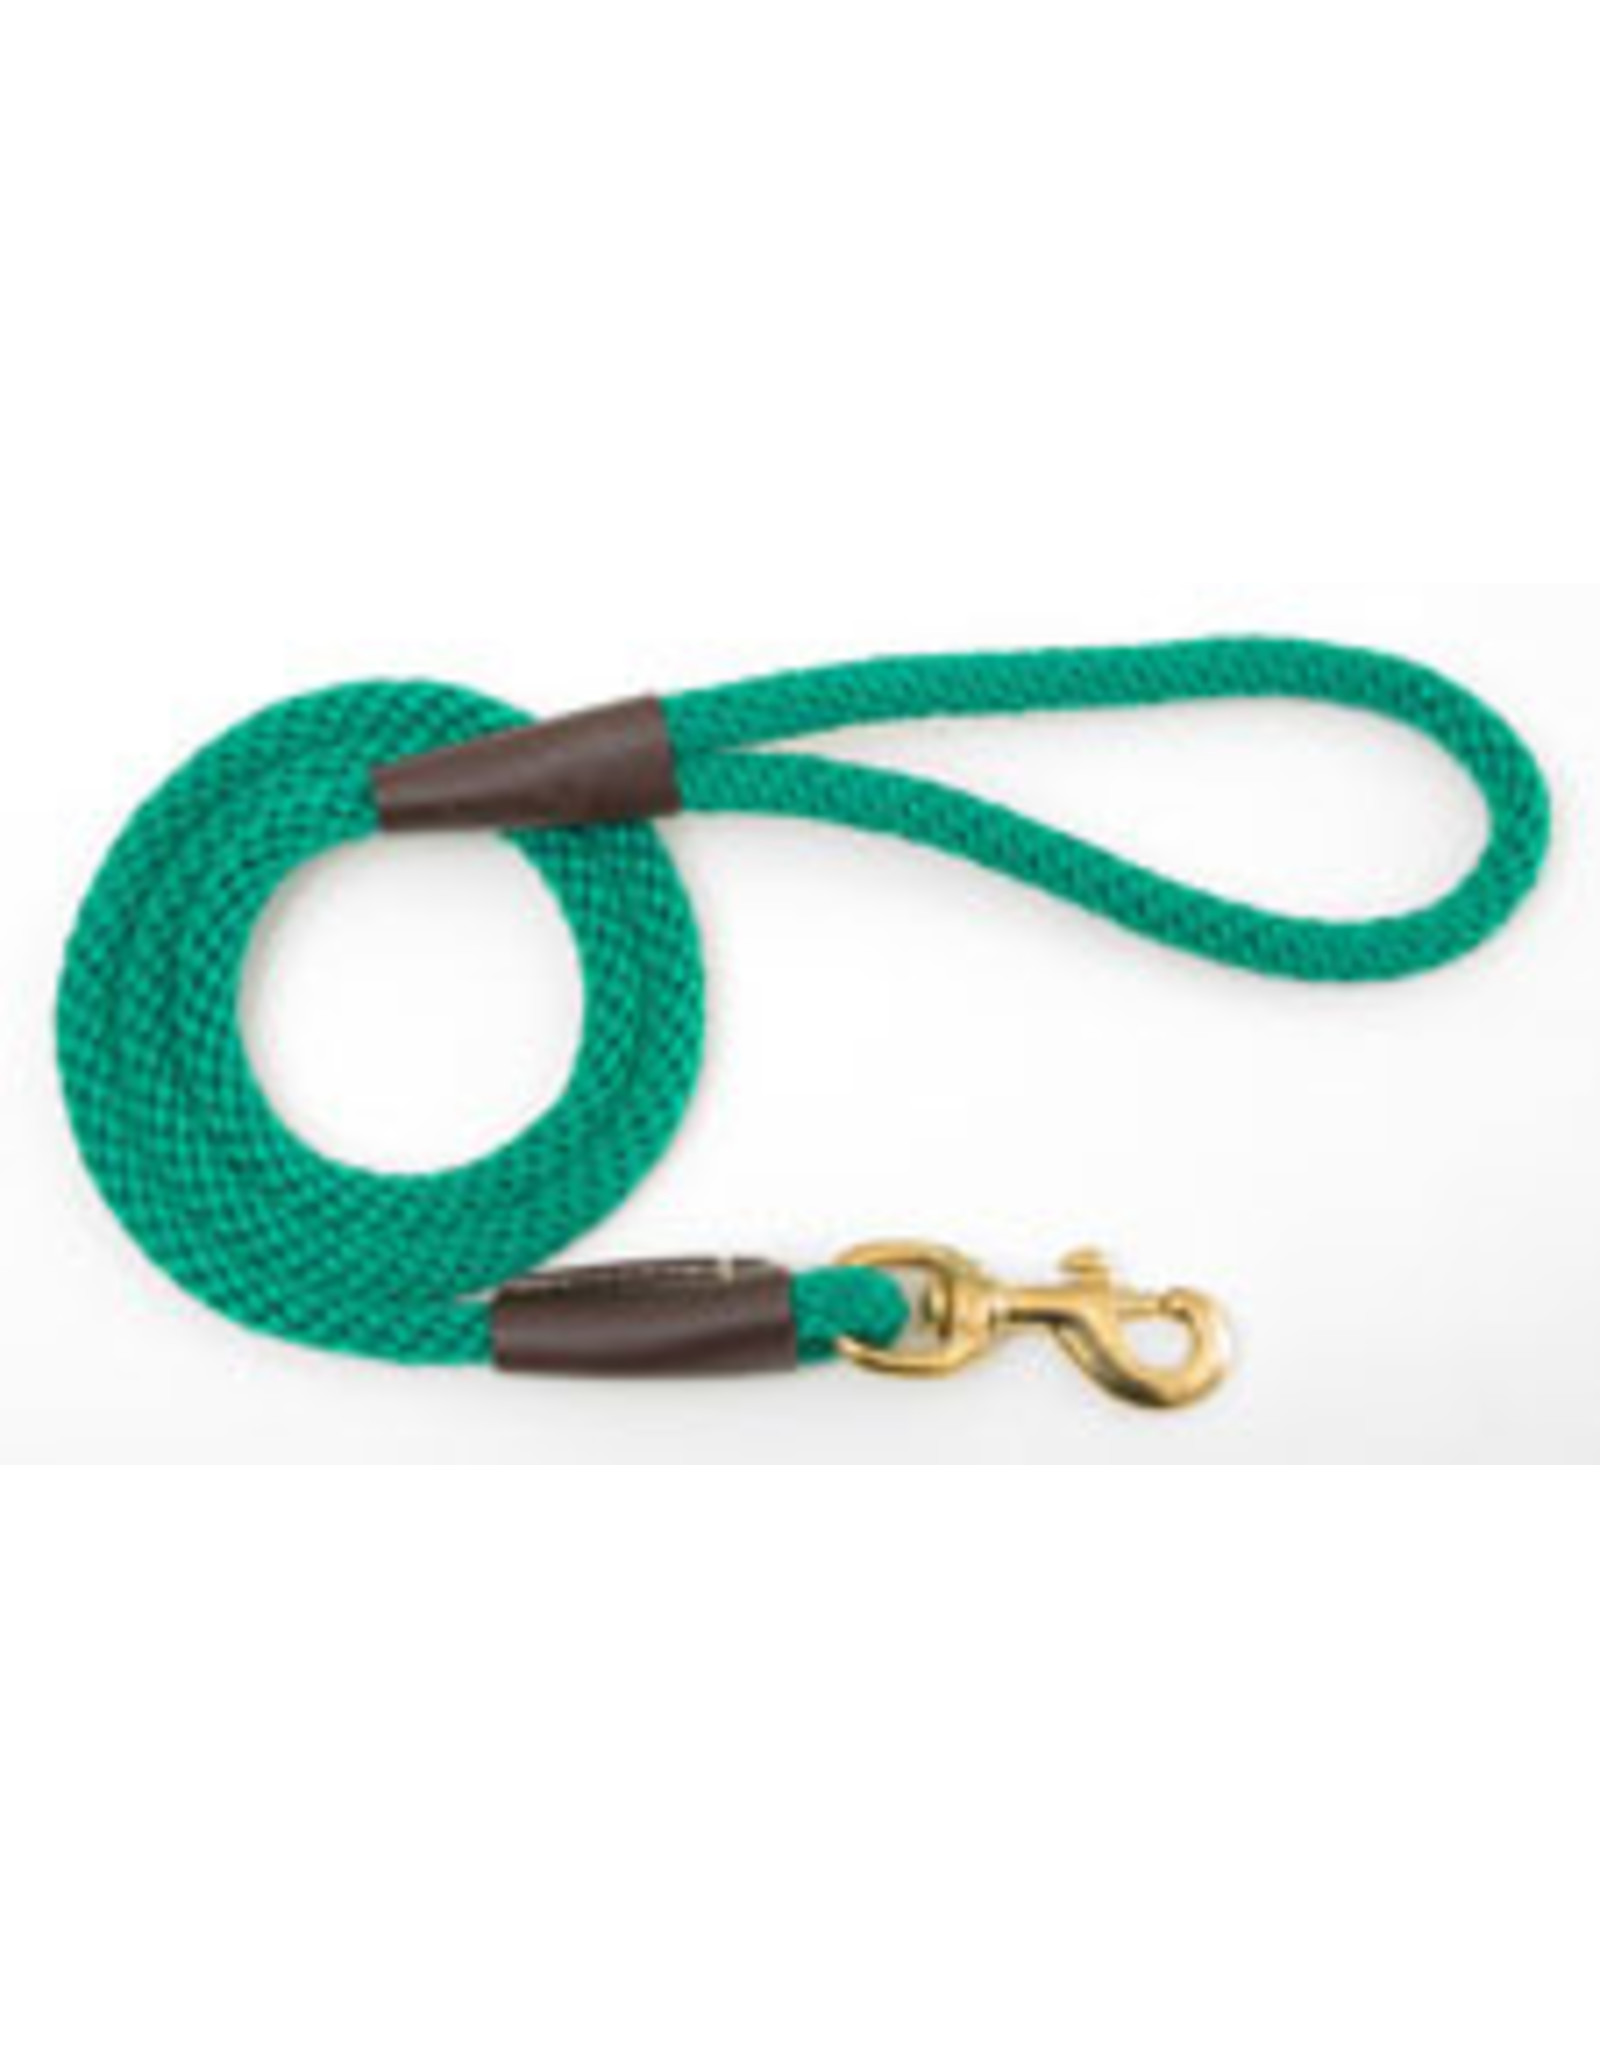 "Mendota Mendota Large Snap Leash KELLY GREEN 1/2"" x6'"